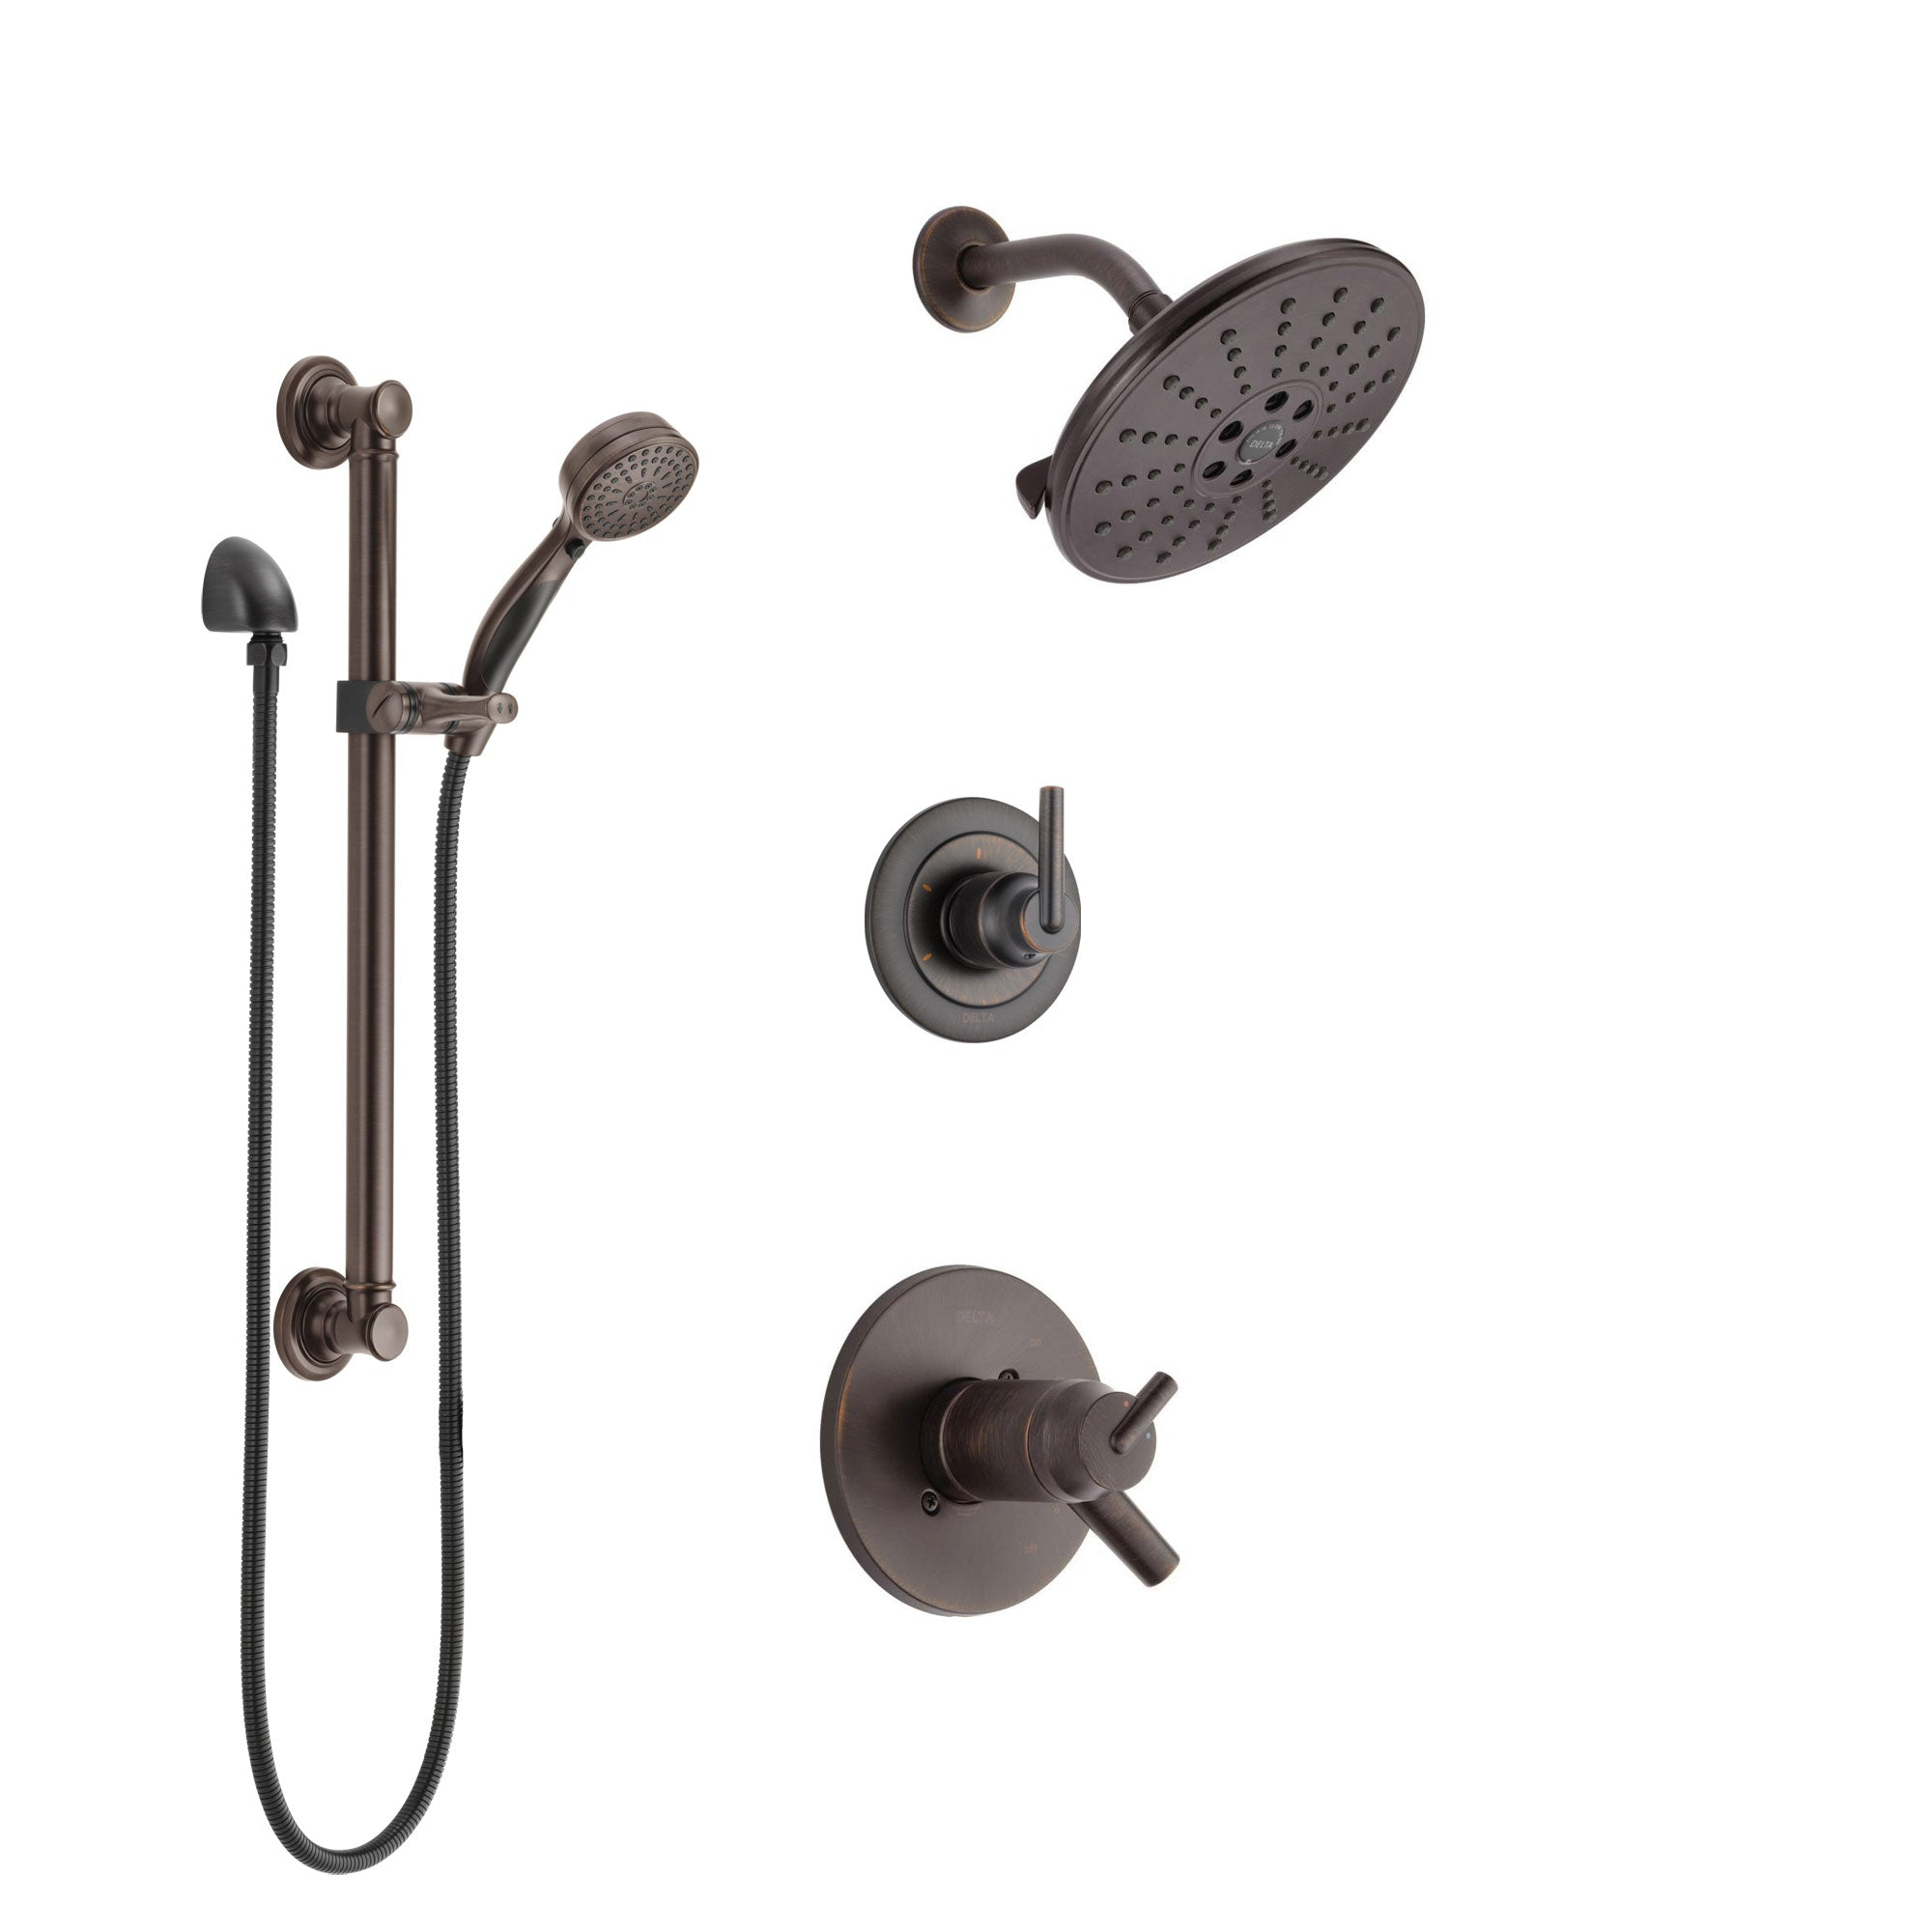 Delta Trinsic Venetian Bronze Shower System with Dual Thermostatic Control Handle, Diverter, Showerhead, and Hand Shower with Grab Bar SS17T2592RB3